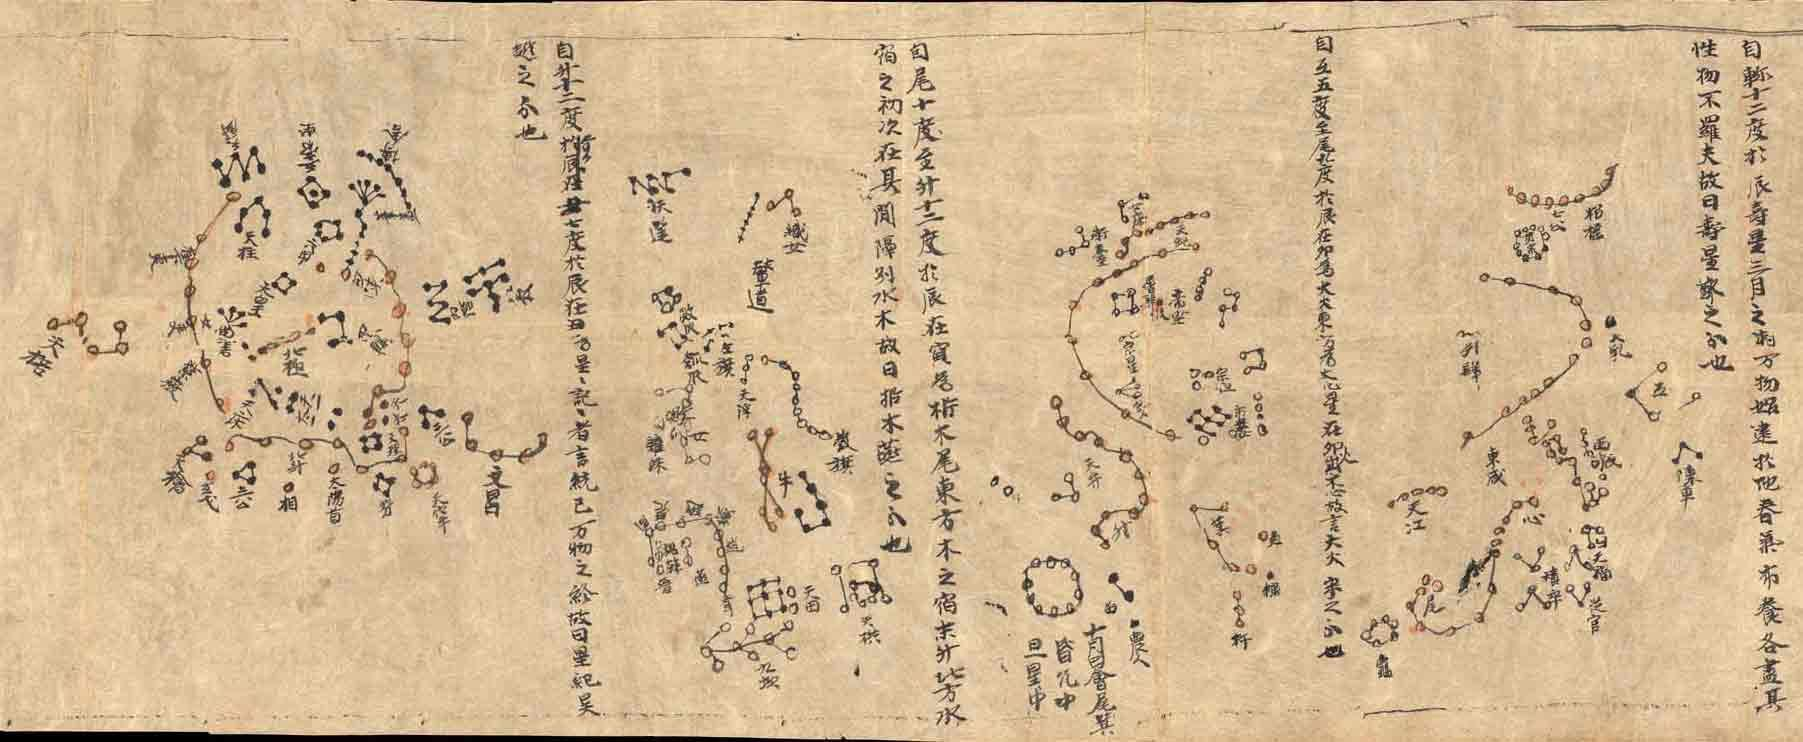 Part Of The Dunhuang Star Chart With Three Sections Of The Sky